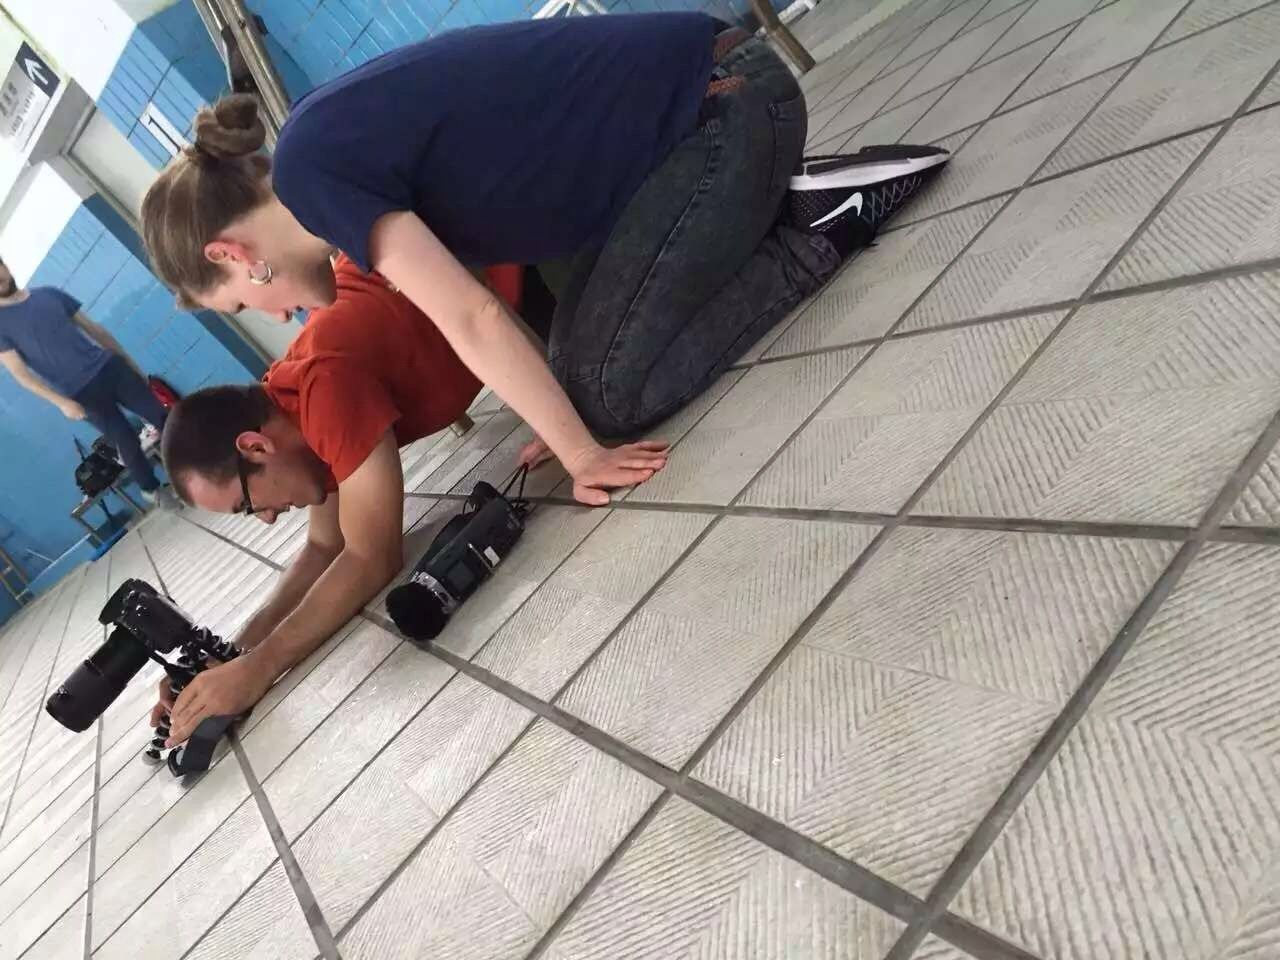 Setting up a close shot at the swimming pool with director Antonia Meile.